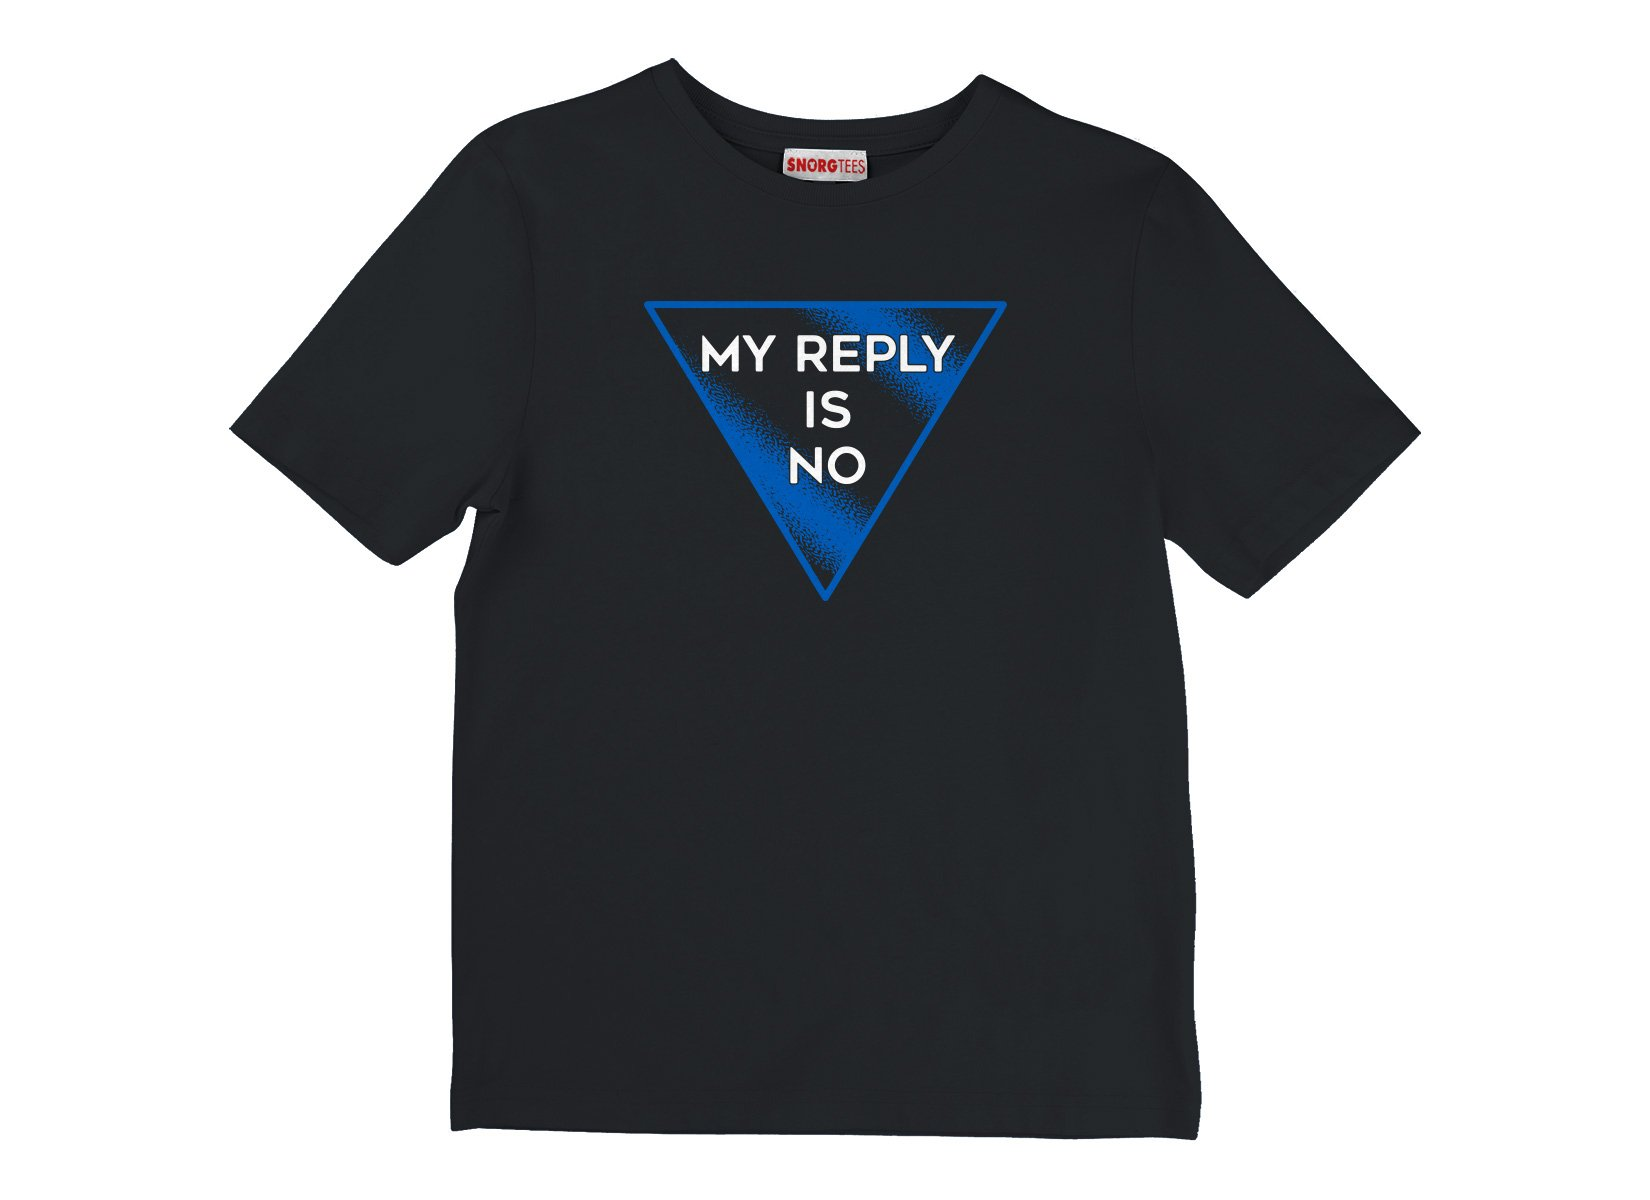 My Reply Is No on Kids T-Shirt